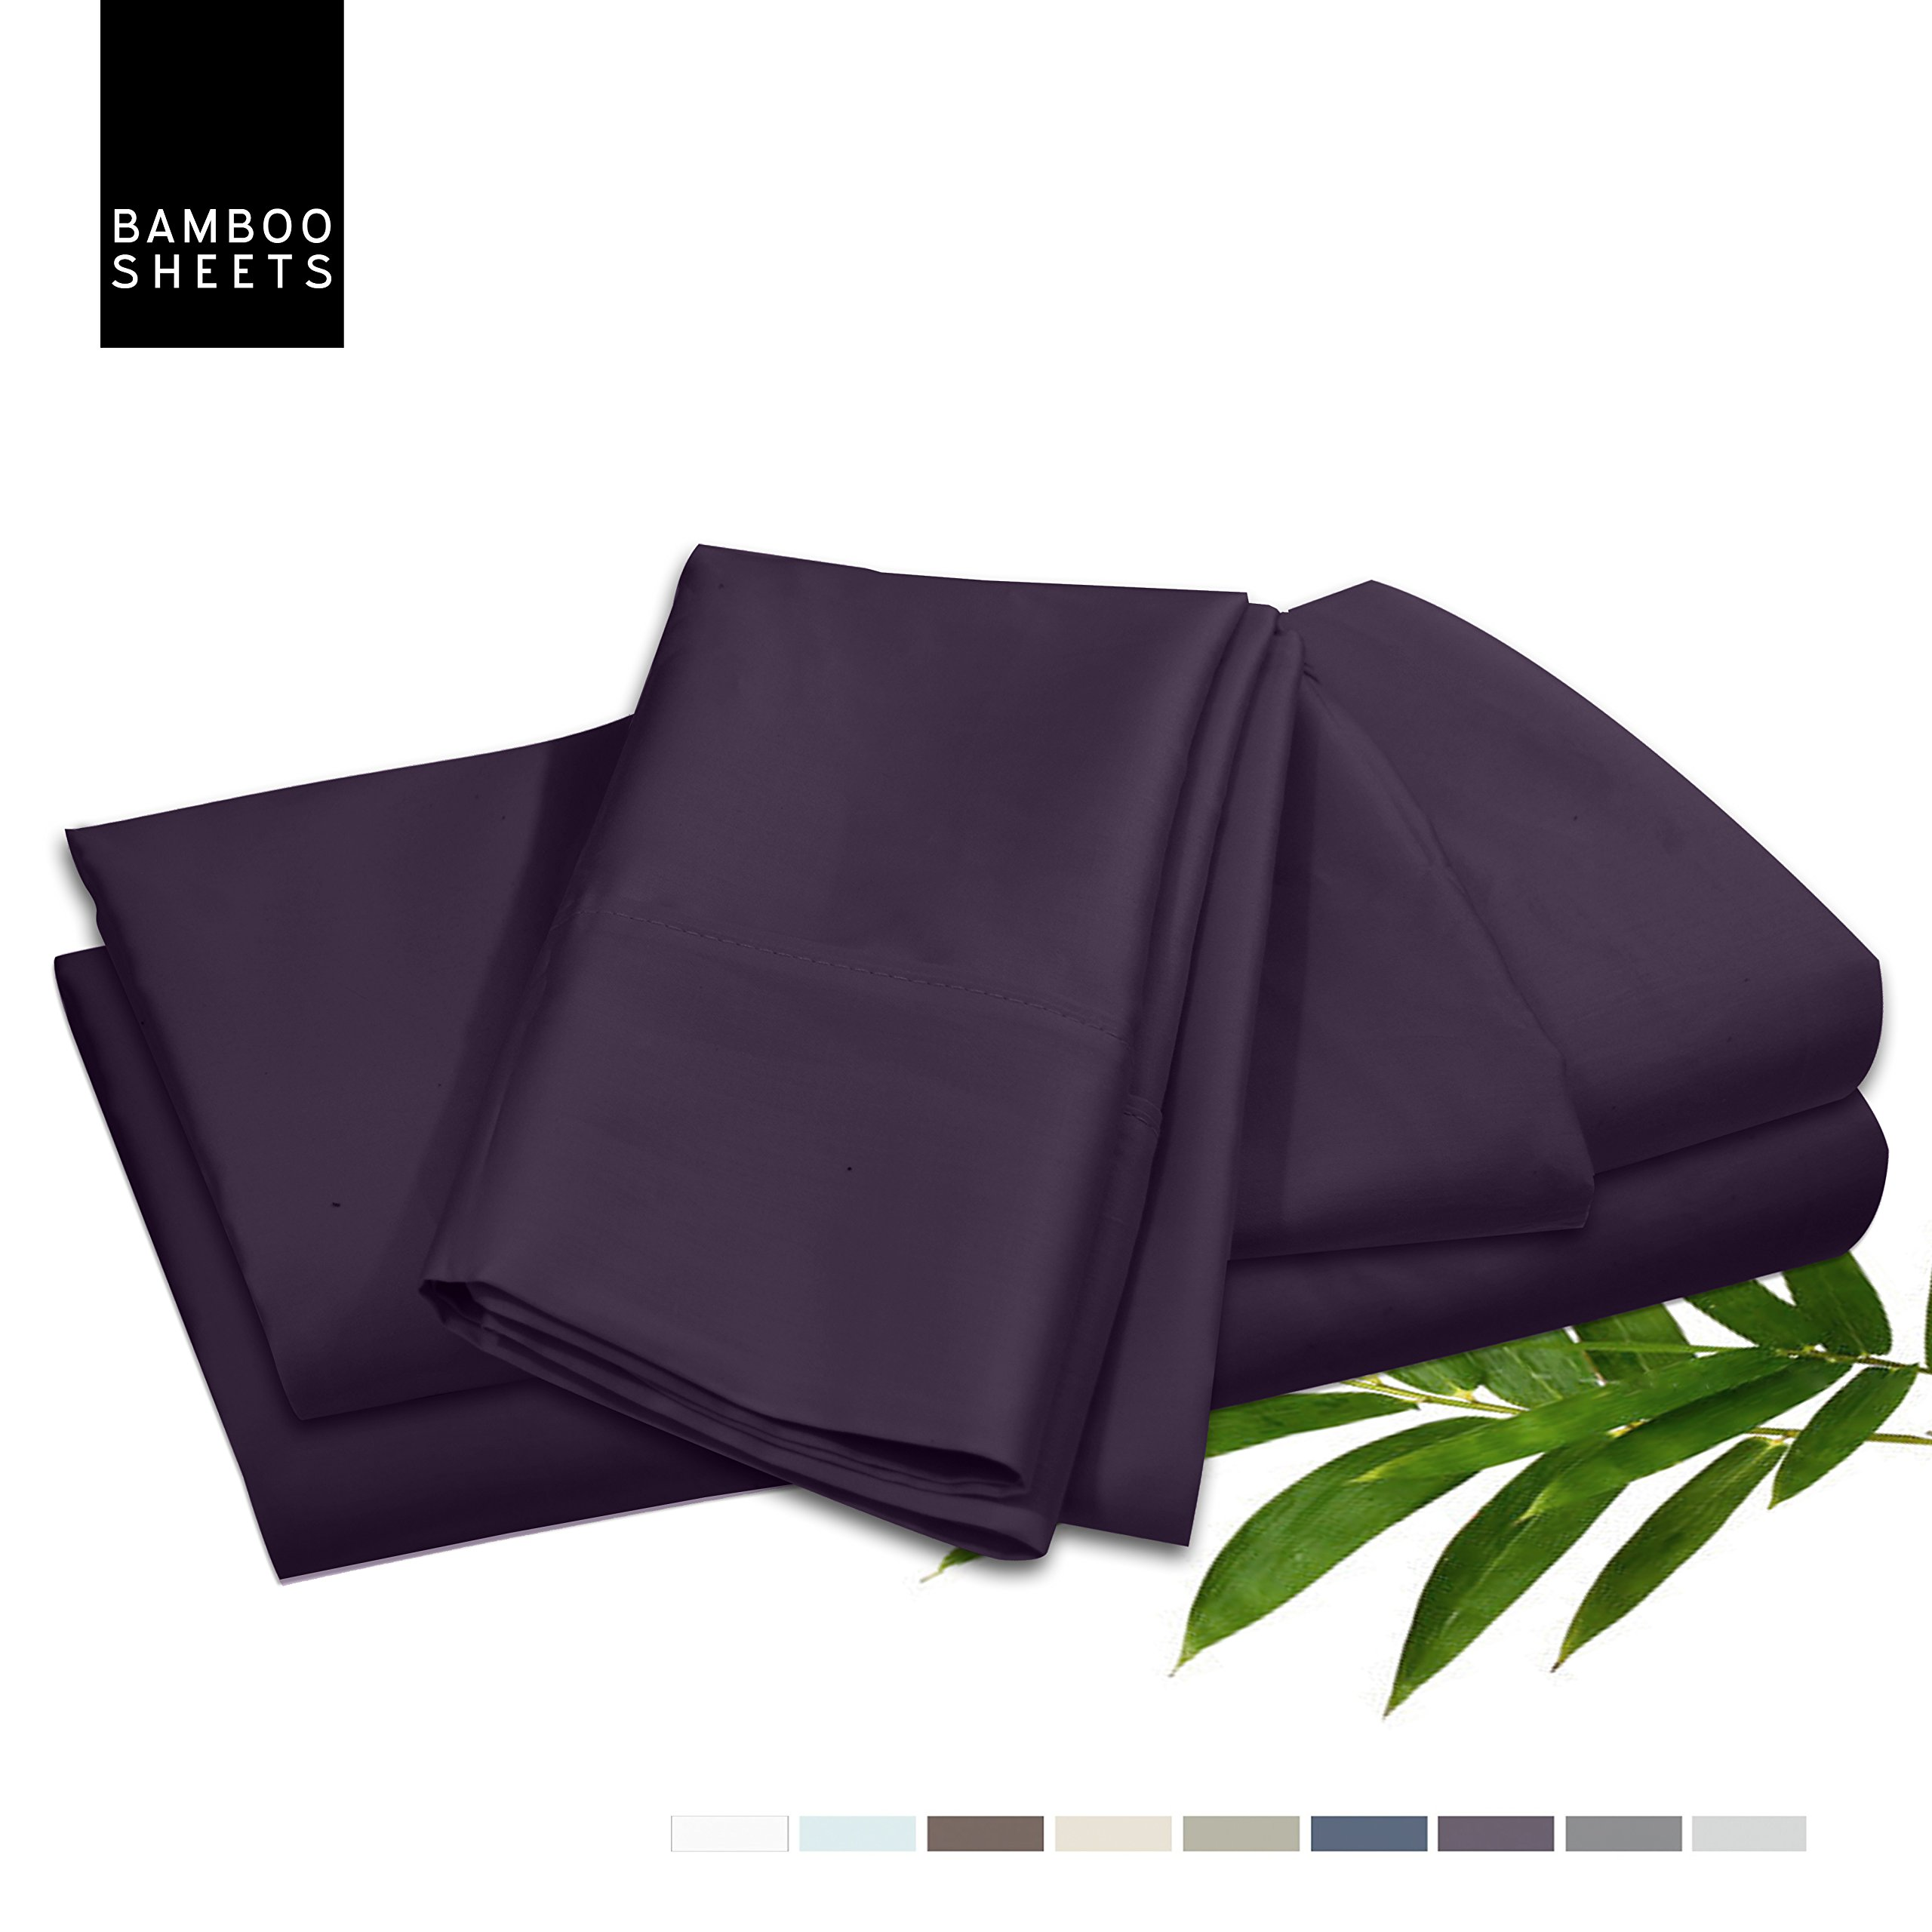 bamboo sheets count bed good is what thread wrinkles viscose a